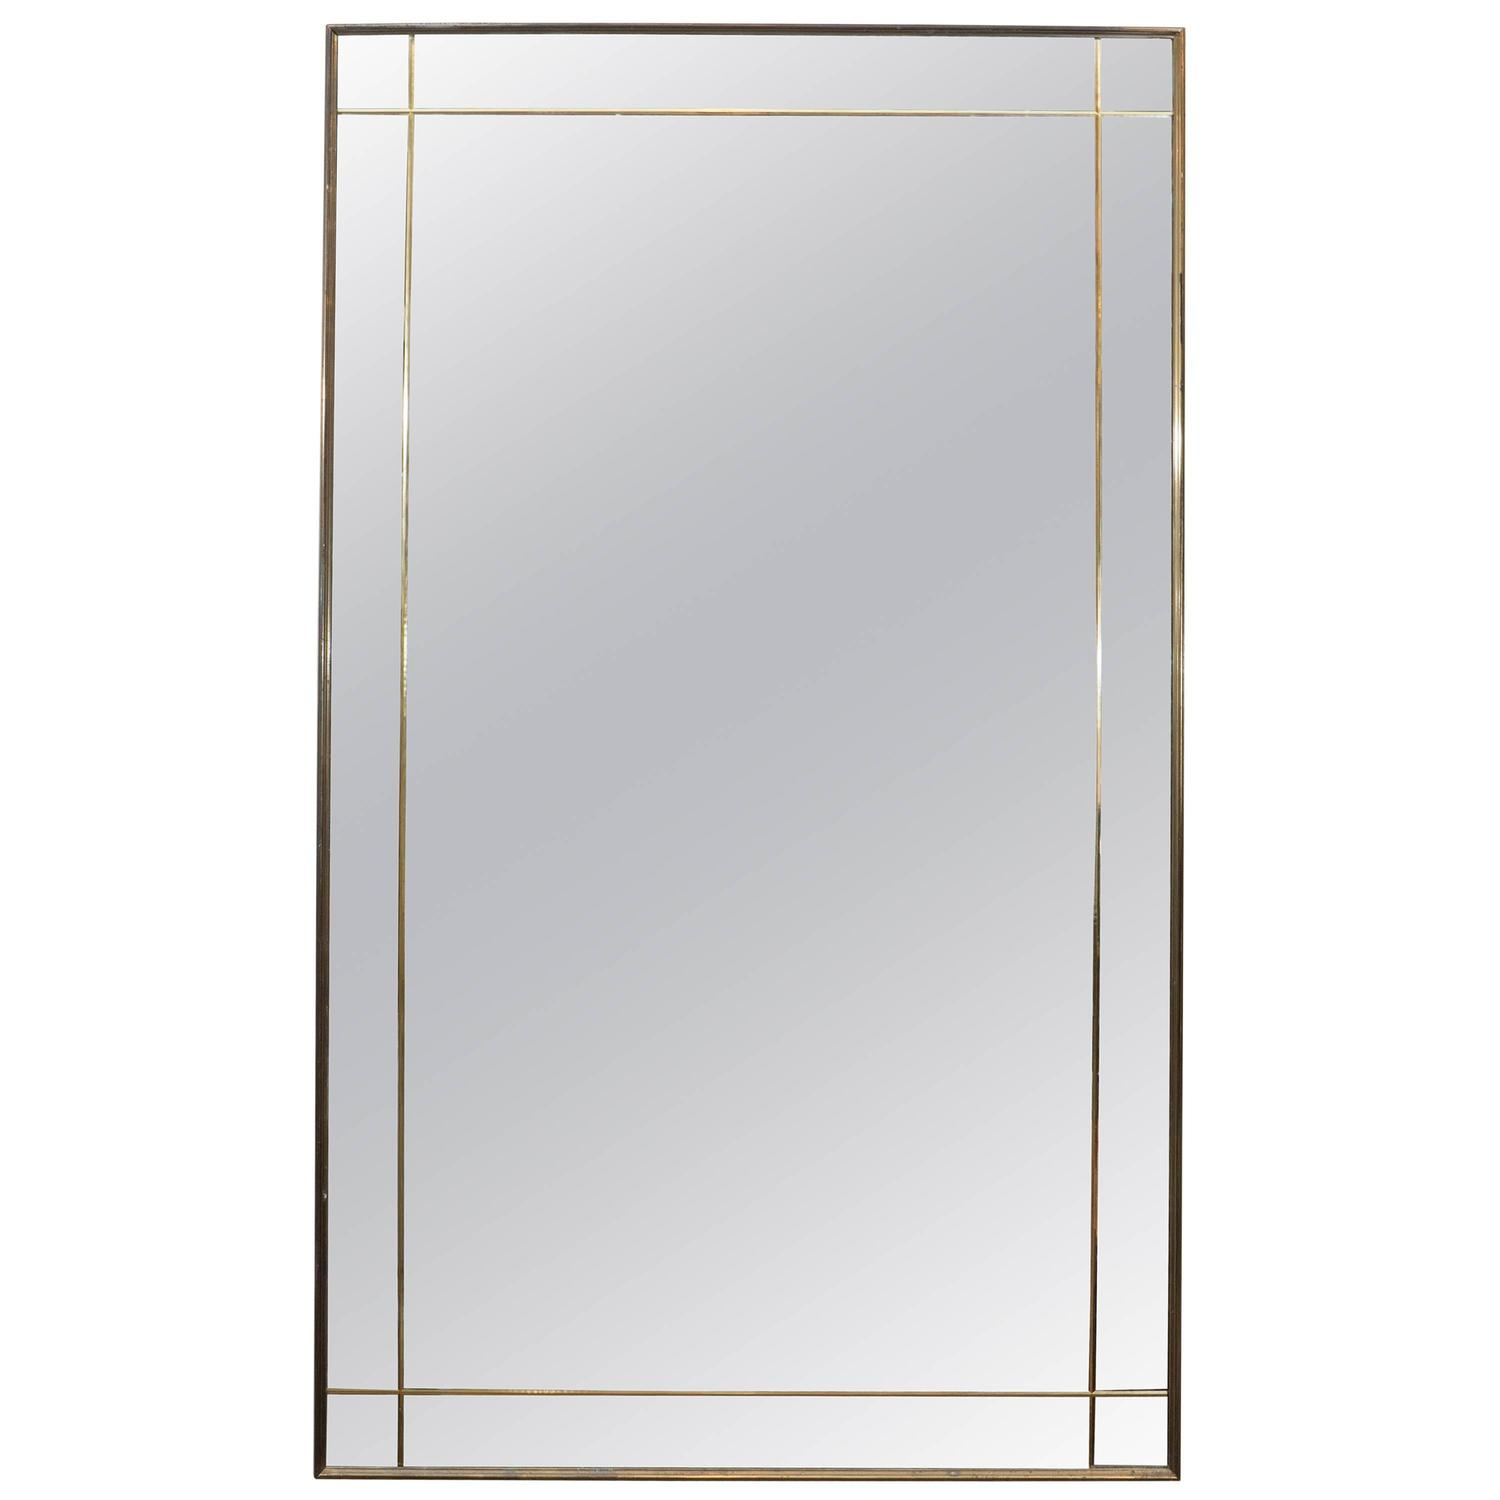 Art deco gilt beveled wall mirror at 1stdibs for Art mirrors for walls